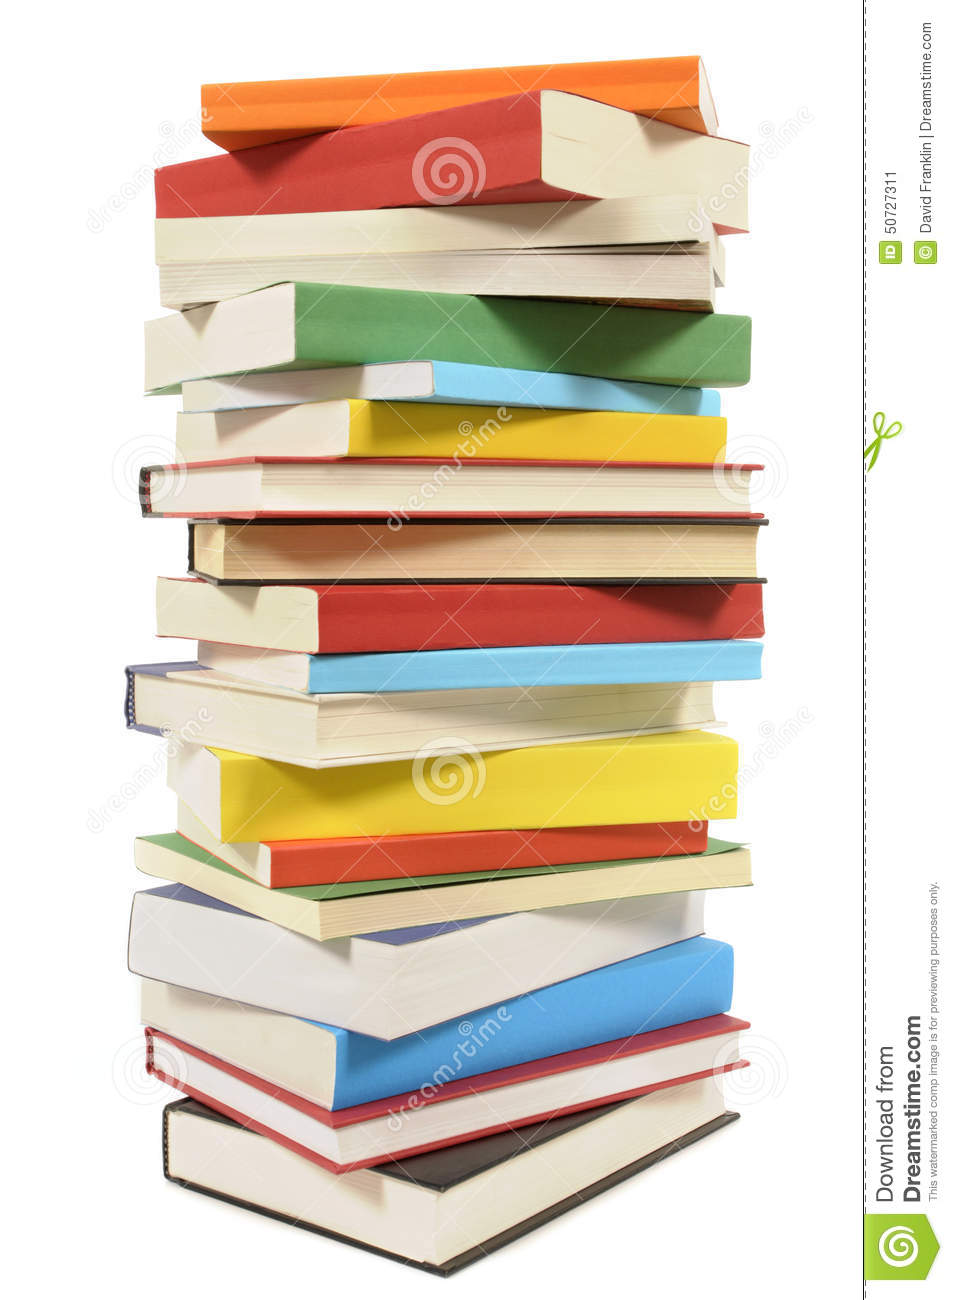 Tall Stack Of Books Clipart.